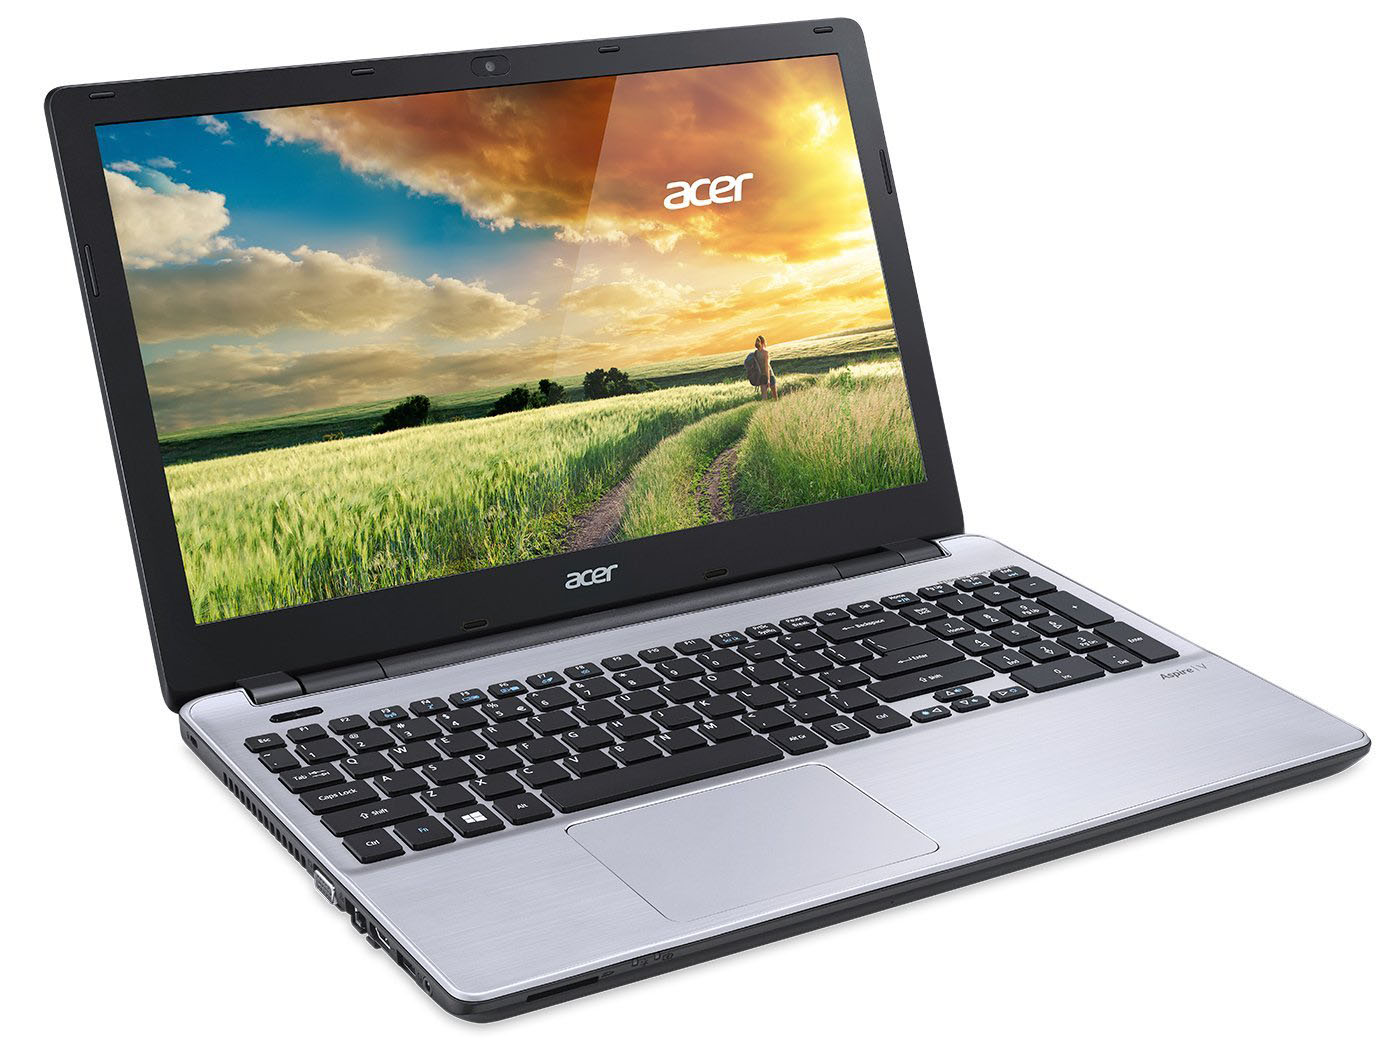 Acer Aspire V3-532 Intel Bluetooth Windows